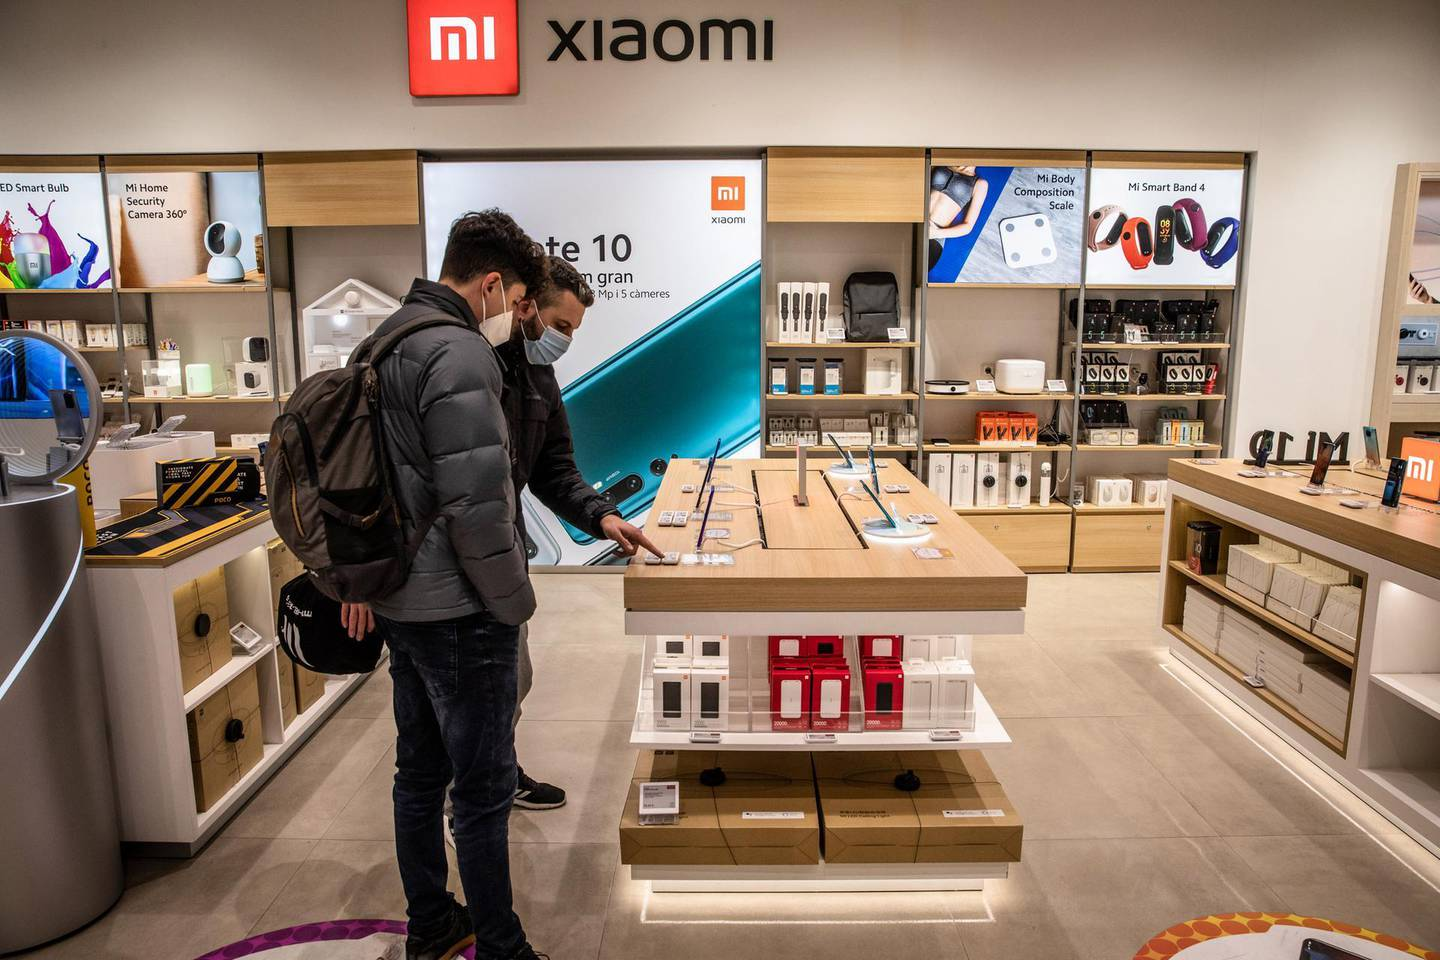 Customers browse Xiaomi Corp. smartphones on display inside the AliExpress plaza retail store, operated by Alibaba Group Holding Ltd., in Barcelona, Spain, on Wednesday, Jan. 13, 2020. U.S. officials deliberated but ultimately decided against banning American investment in Alibaba and Tencent Holdings Ltd., a person familiar with the discussions said, removing a cloud of uncertainty over Asia's two biggest corporations. Photographer: Angel Garcia/Bloomberg